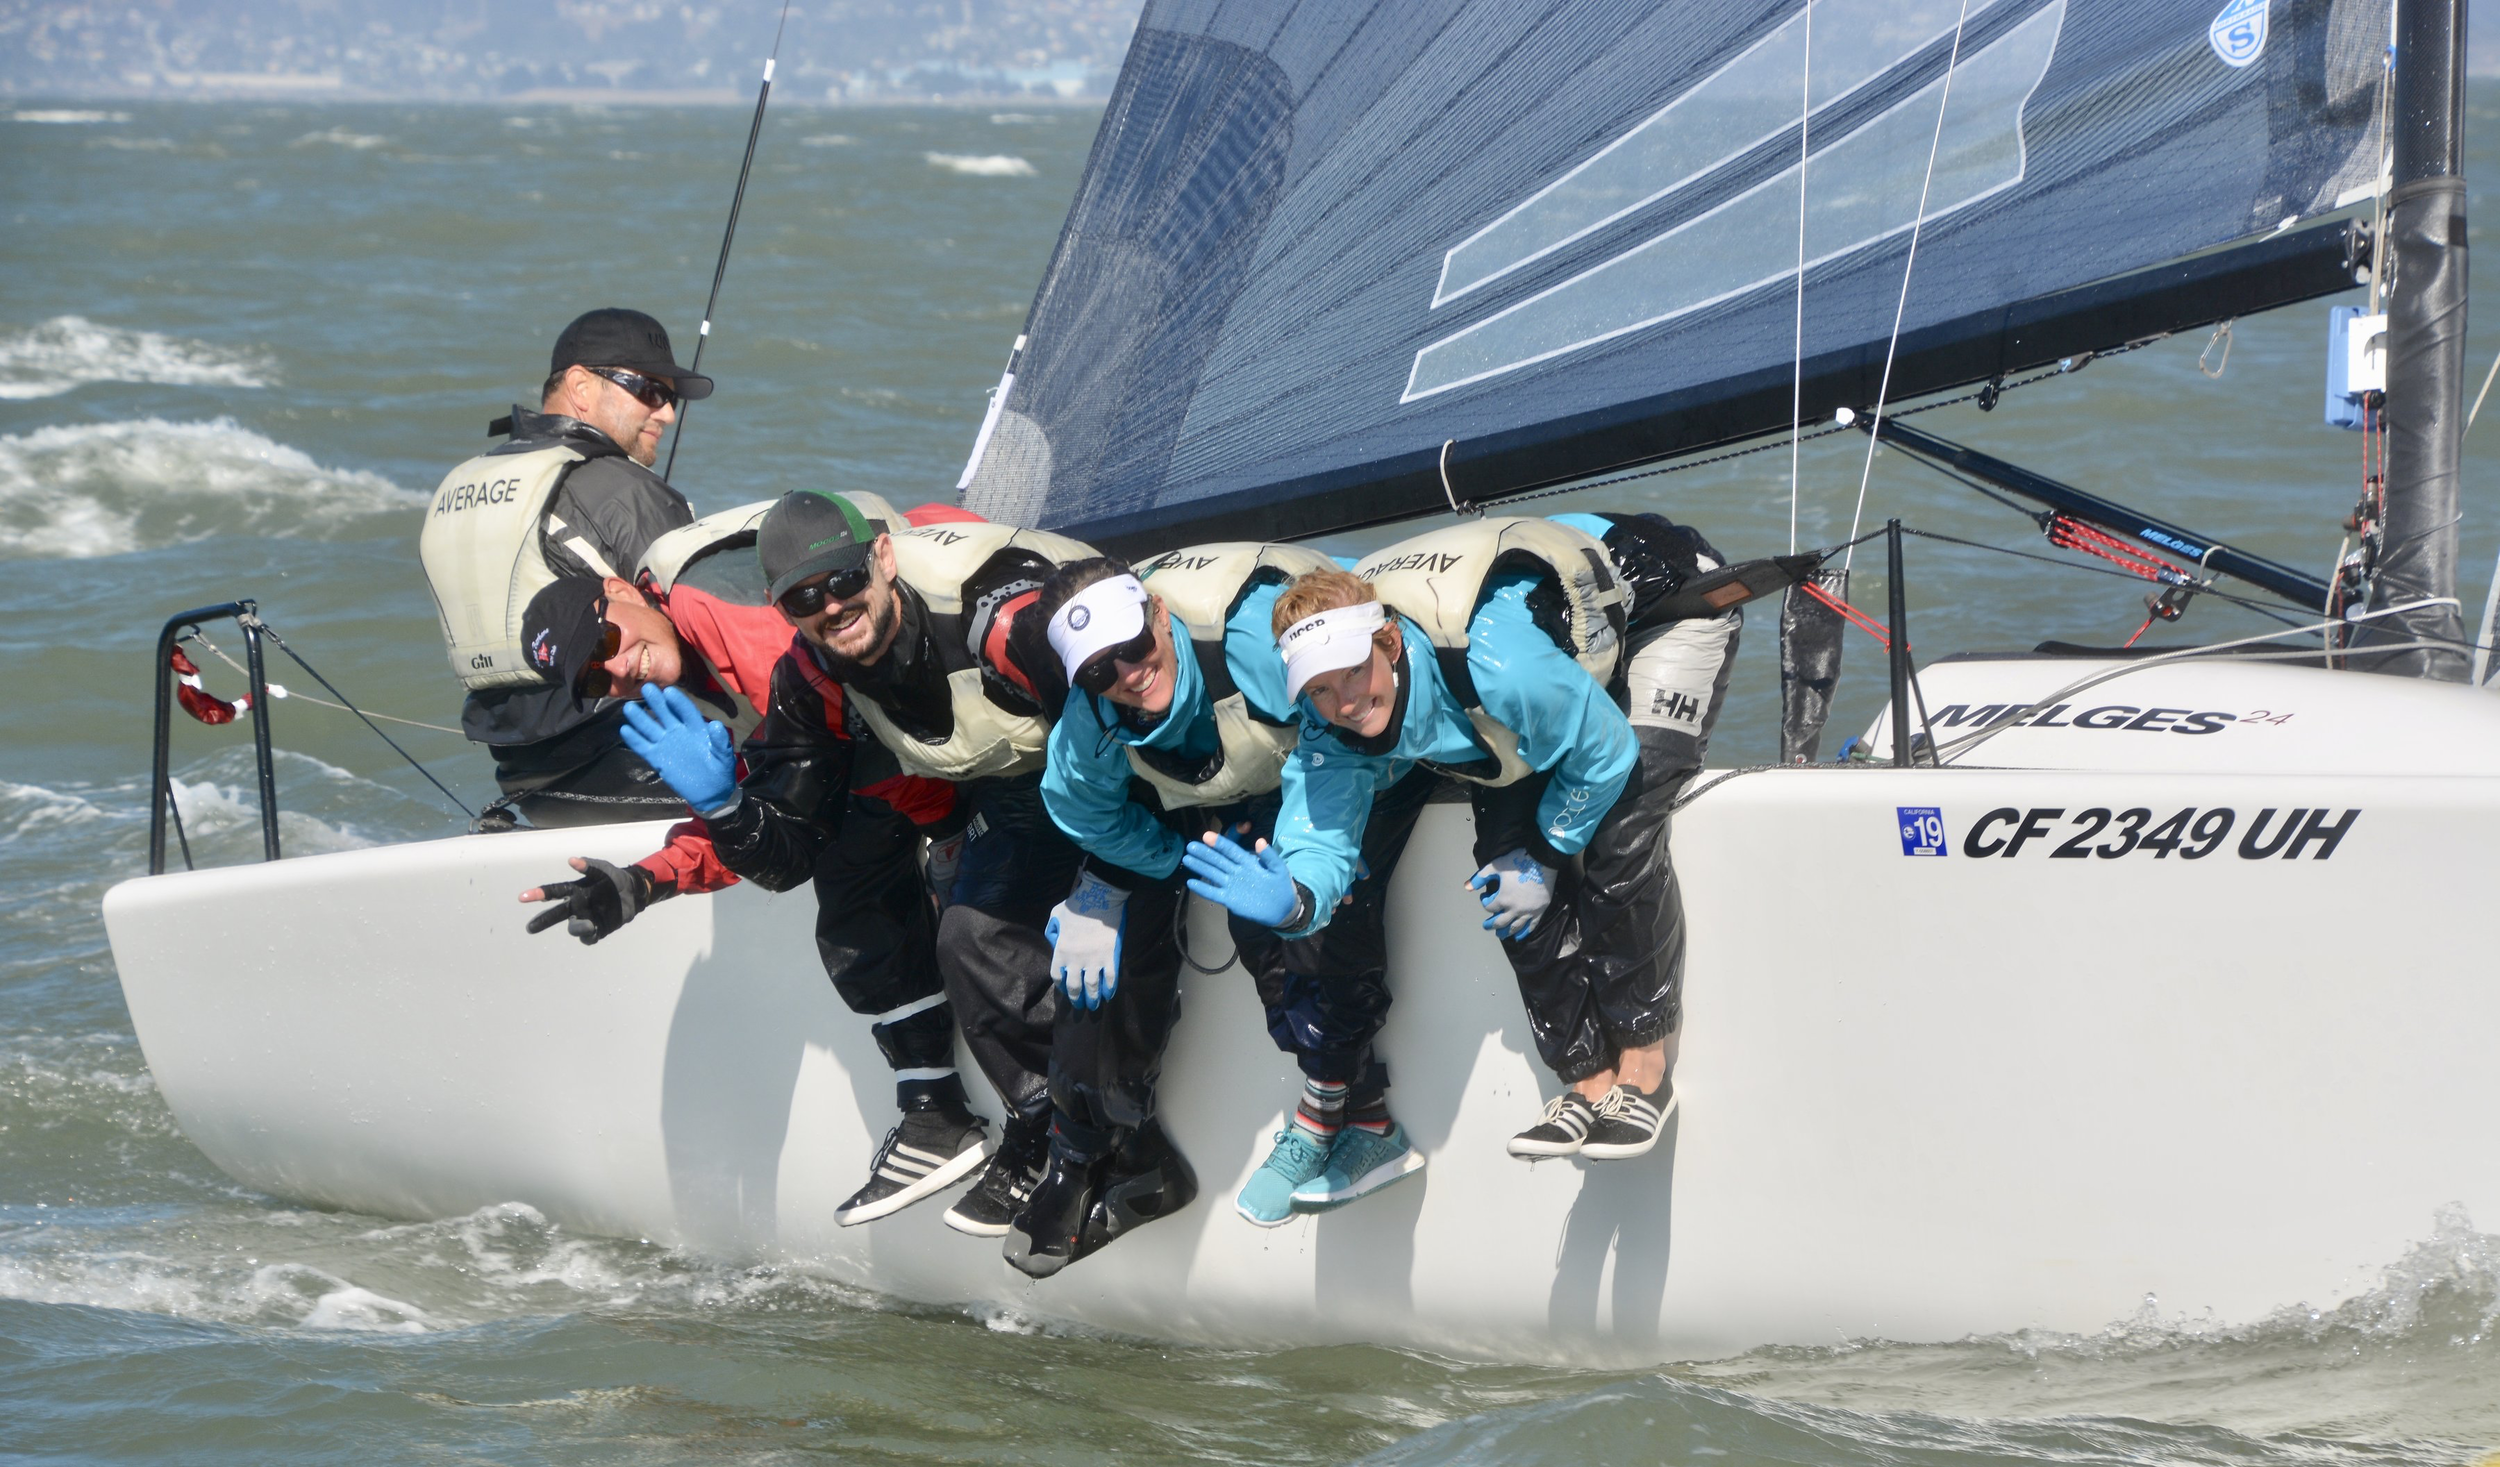 M24 NorAm Tour (Corinthian) Champion -    USA549 AVERAGE, Santa Barbara, California;Kent Pierce- helm & co-owner, Eric Stokke-jib, downwind tactics & co-owner, Jon Bell- upwind tactics, spin ,Lauren Bell-mast/Sarah Schaupeter-bow - Photo:    sfycphotos.com    The Corinthian division was won by Kent Pierce's USA549 AVERAGE, which placed an impressive 8overall with a score of 60 points. Laura Grondin's USA850 DARK ENERGY finished 13th overall and 2nd in the Corinthian Division with 50.7 points. Duane Yoslov's USA855 LOOPER was 14th overall, and 3rd in the Corinthian division with 49 points. Bob Britten's CAN415 FULL CIRCLE (47.3 points) and MacGregor/Hammer's USA806 GOOD ENOUGH (42.6 points) finished the tour at 4th and 5th respectively.  The three-staged tour boasted a top-flight international fleet of forty-nine Melges 24's sailing in two spectacular venues on the west coast of the North American continent - Victoria, British Columbia and Belvedere, California.